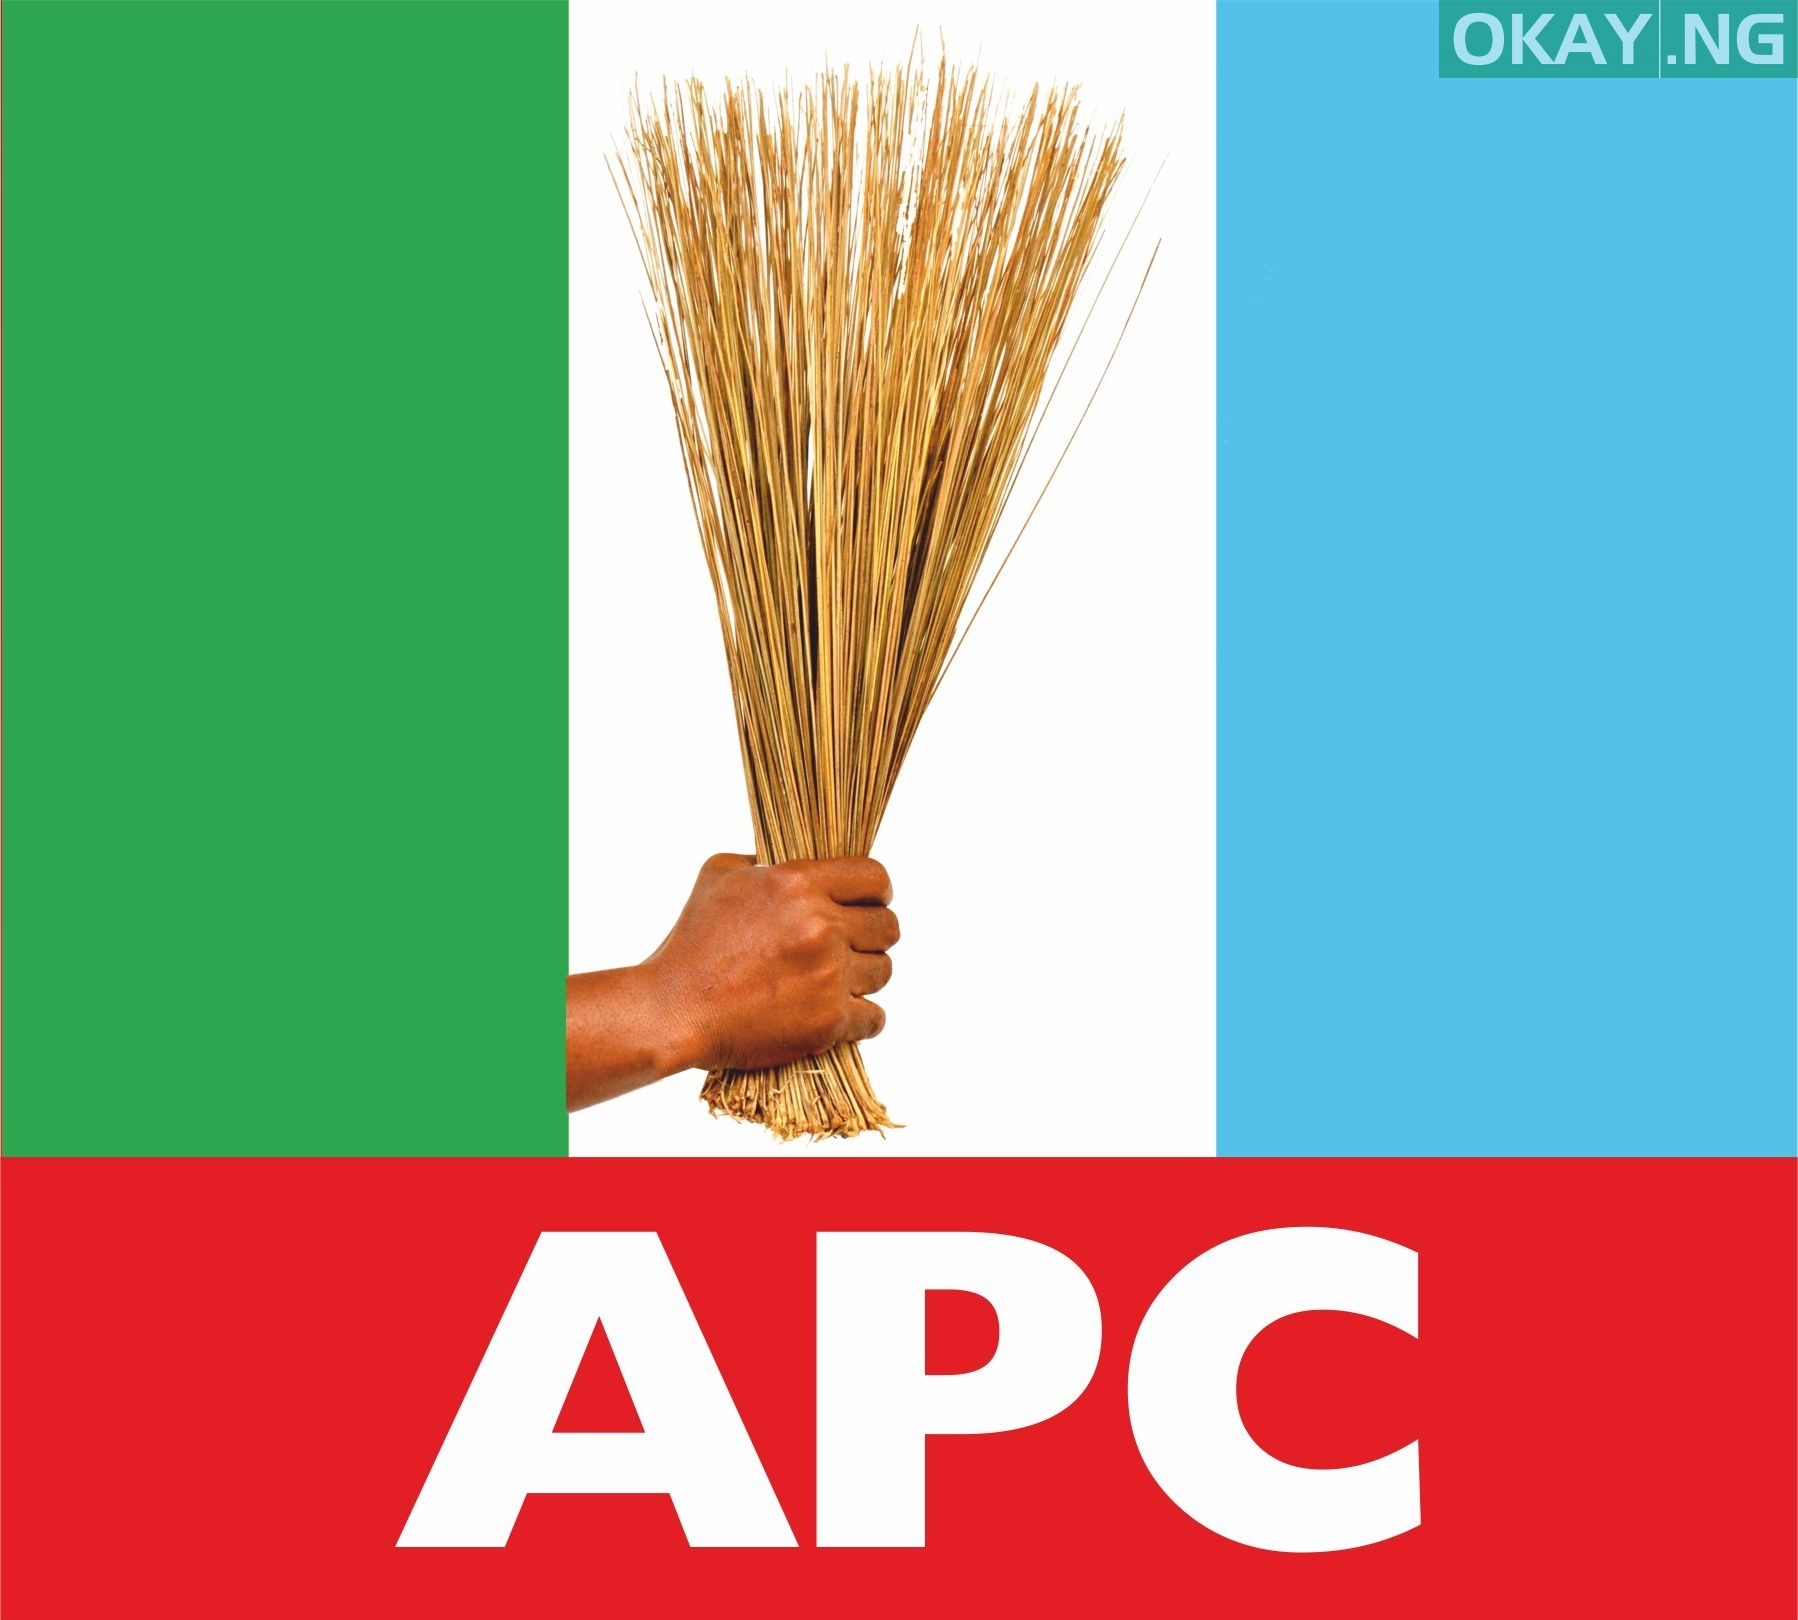 APC LOGO OKAYNG - APC Vows to Win Abia State In 2019